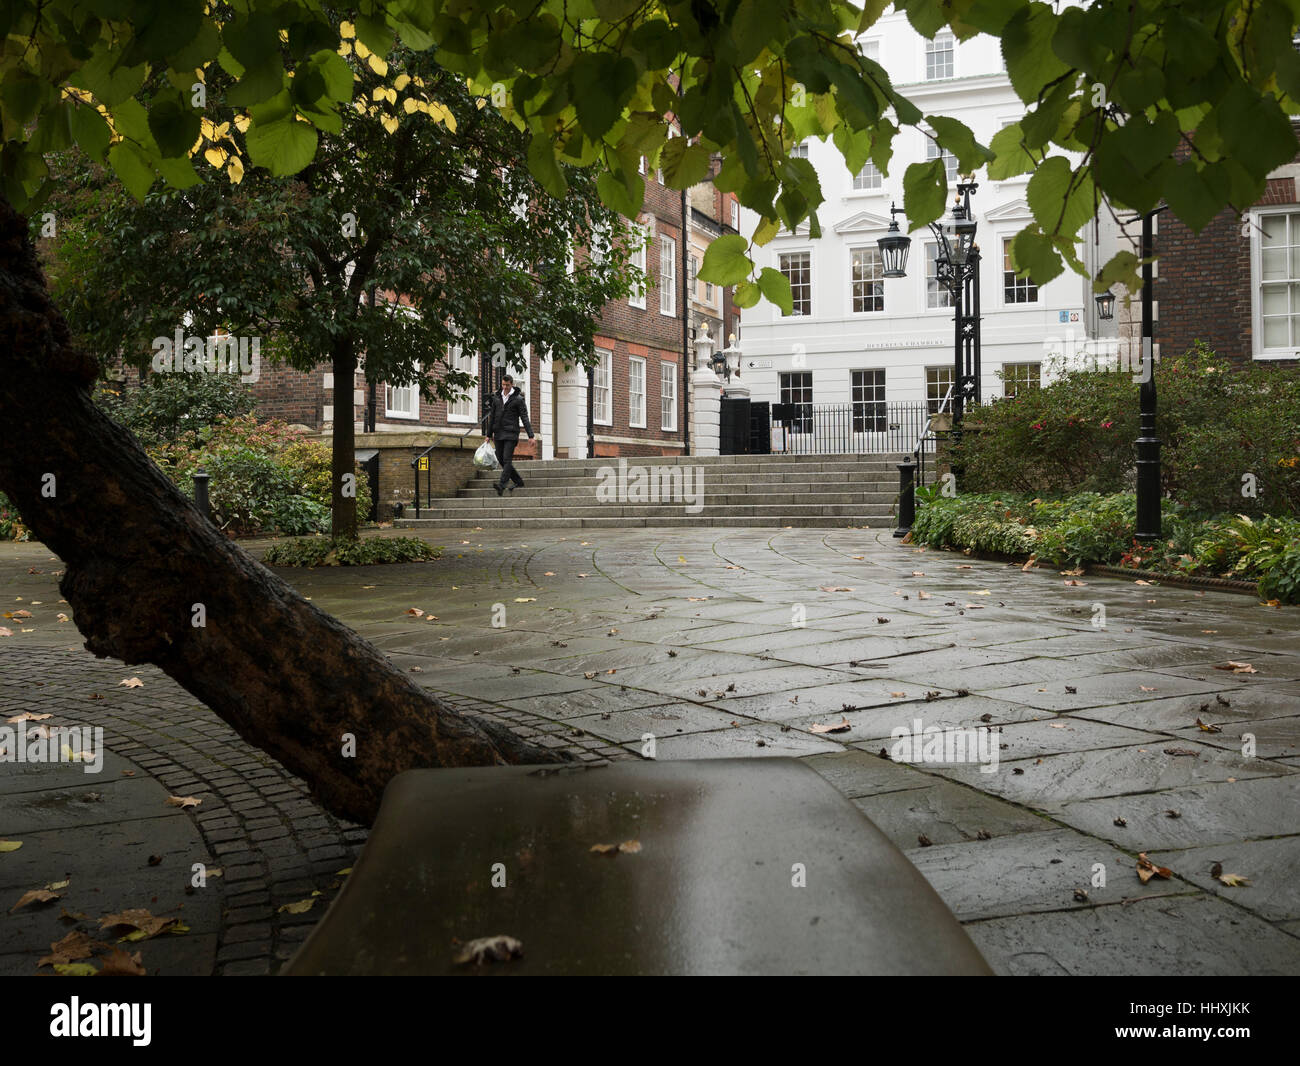 Tranquil scene in the City of London showing Middle Temple with its stone steps and overhung with trees - Stock Image